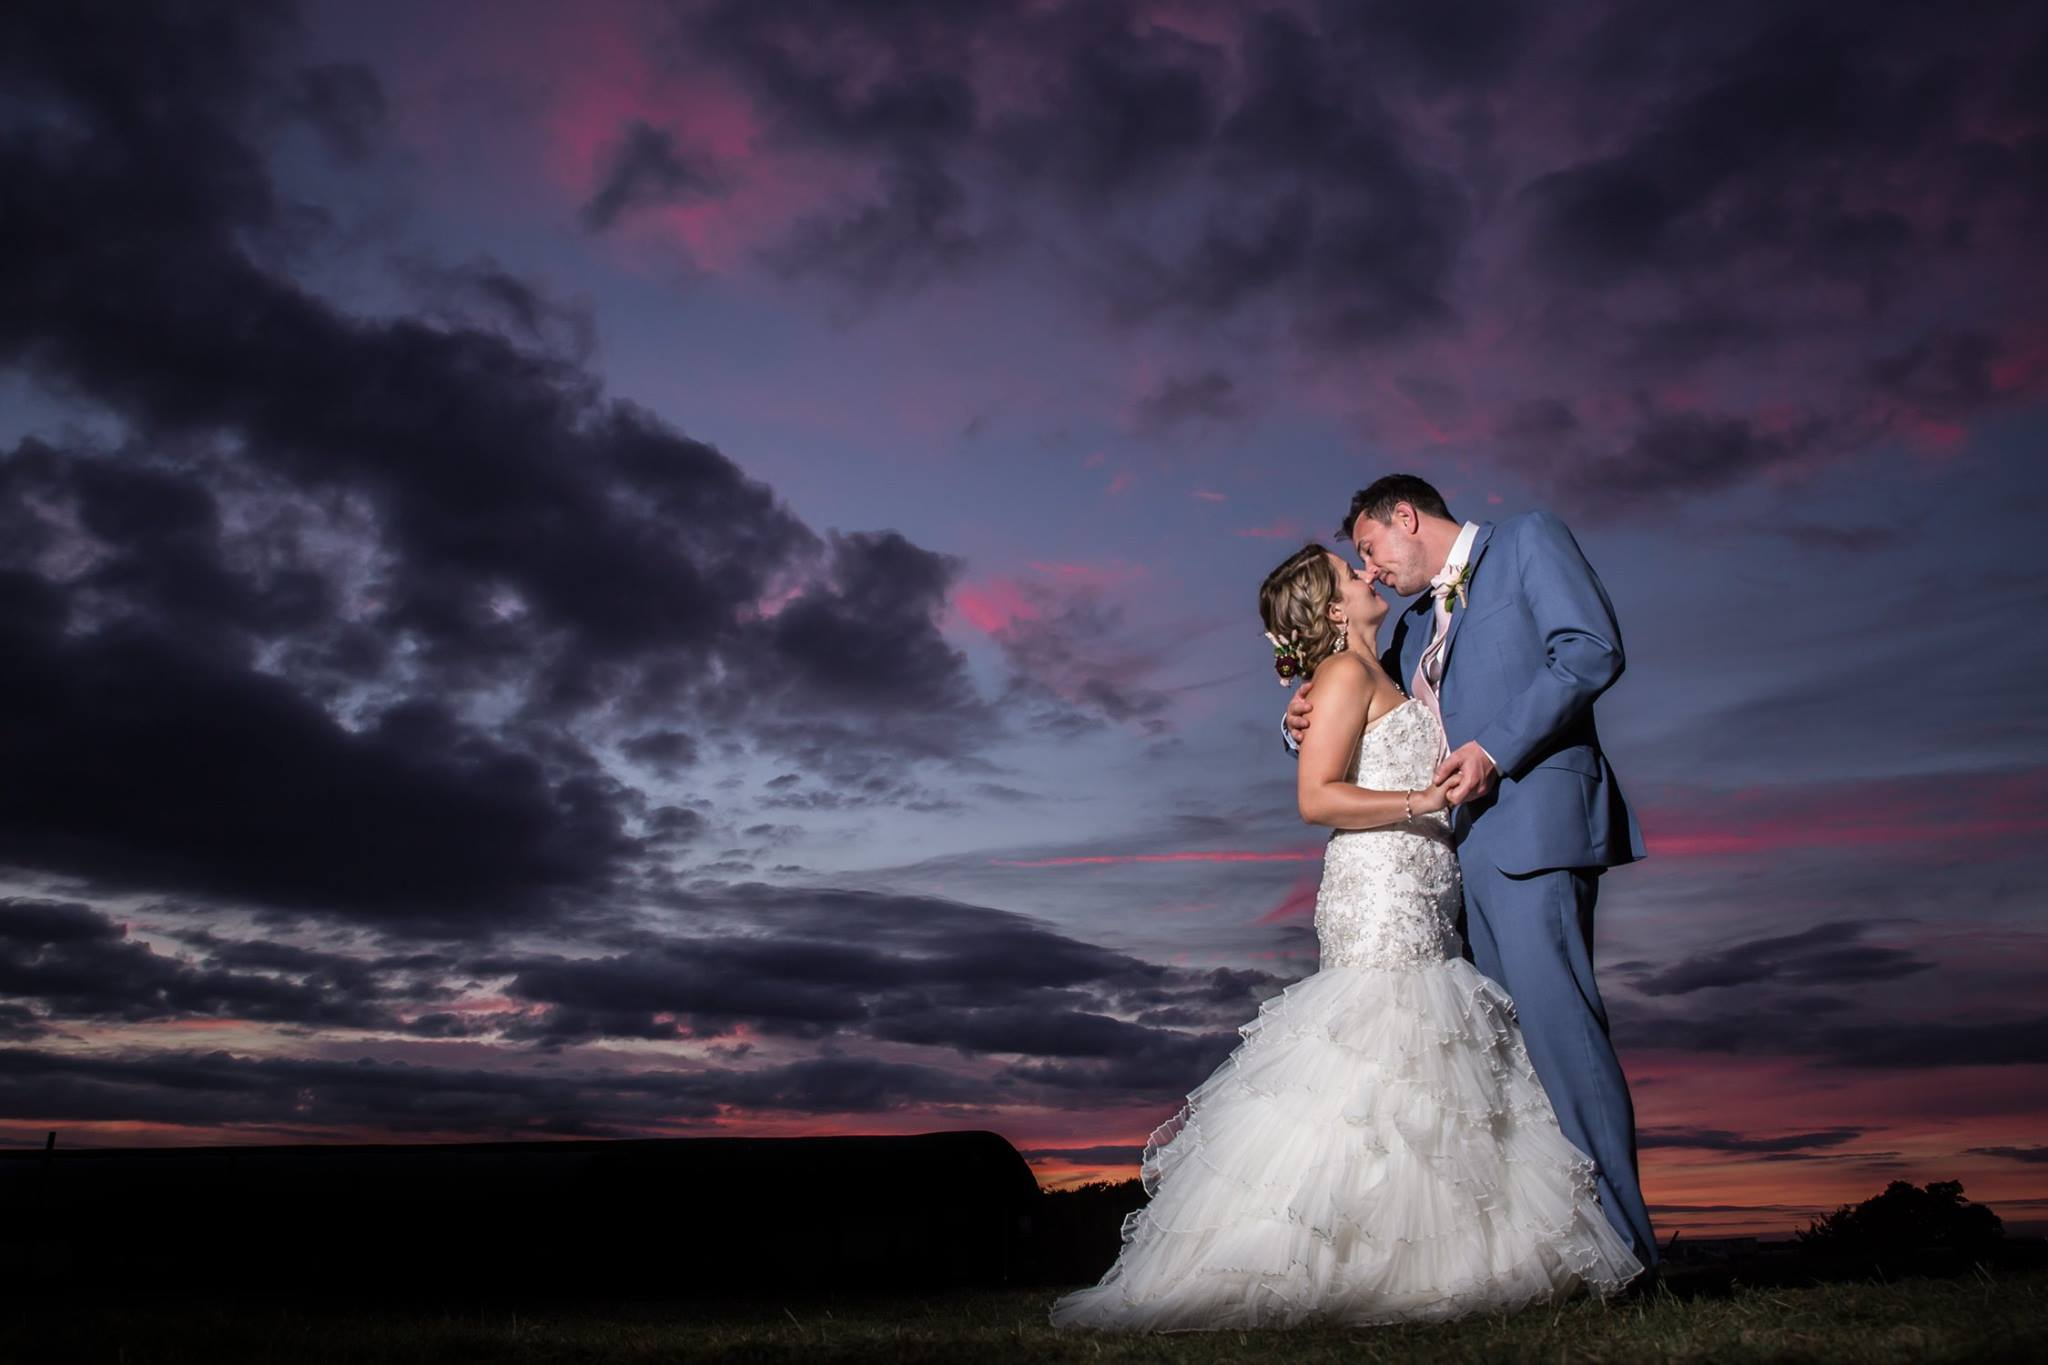 Chris-Kemp-Photography-Bride-groom-portrait-at-sunset